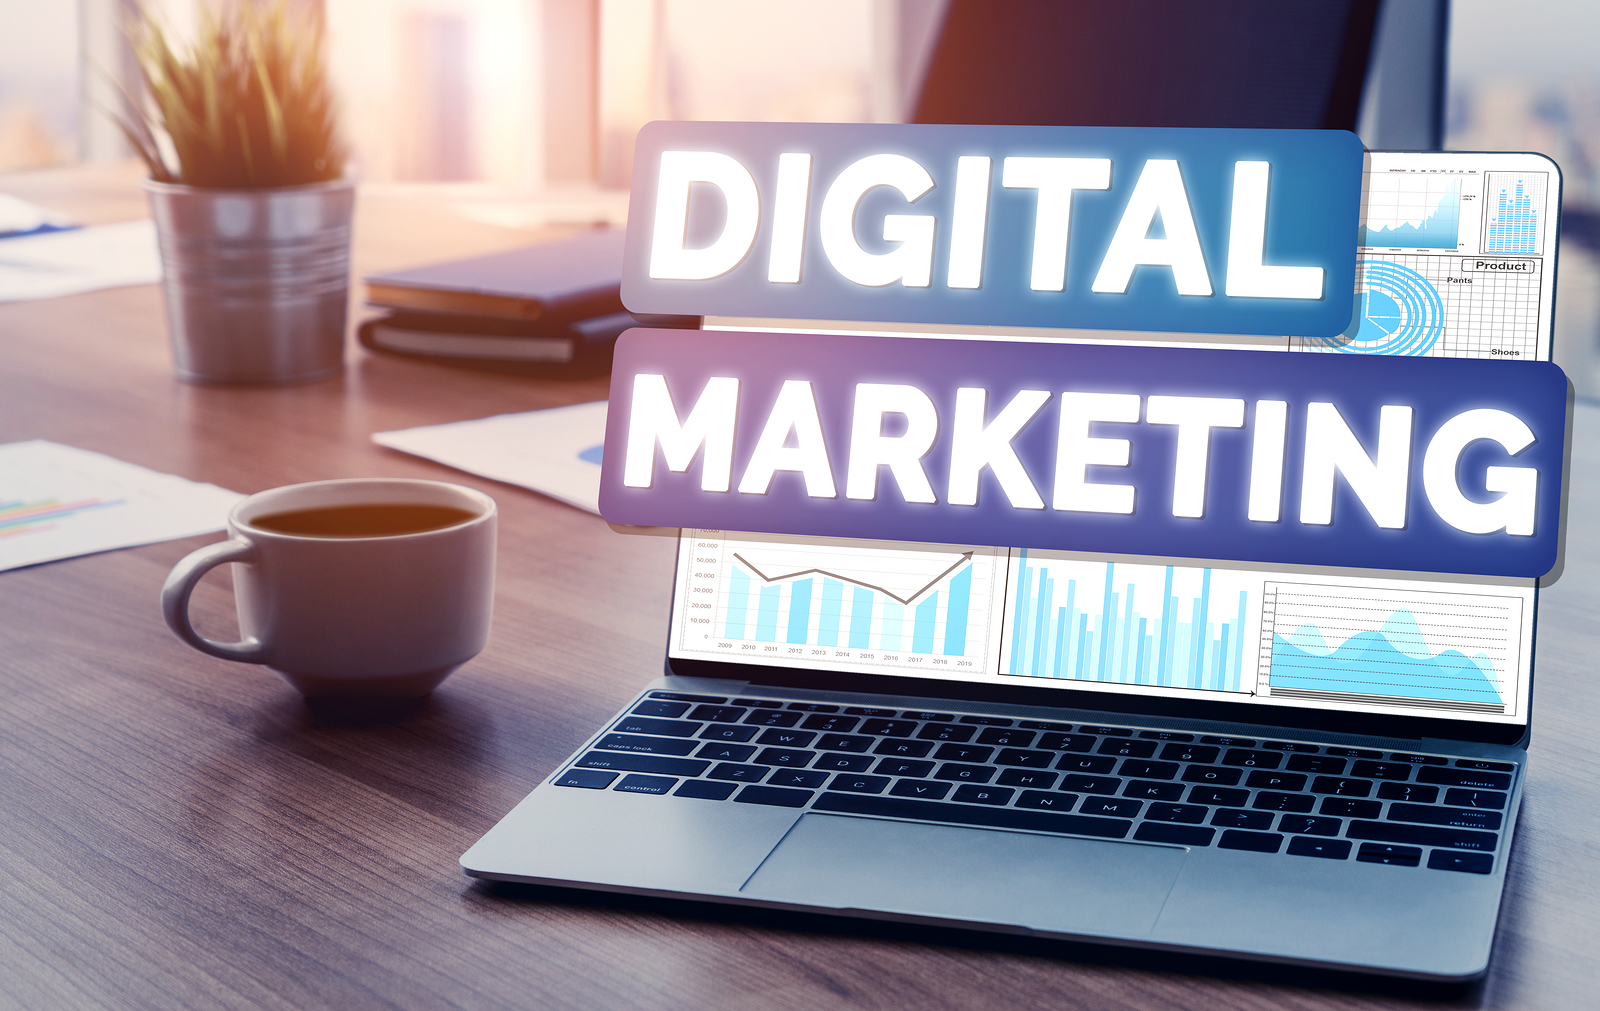 Top Digital Marketing Trends for 2020